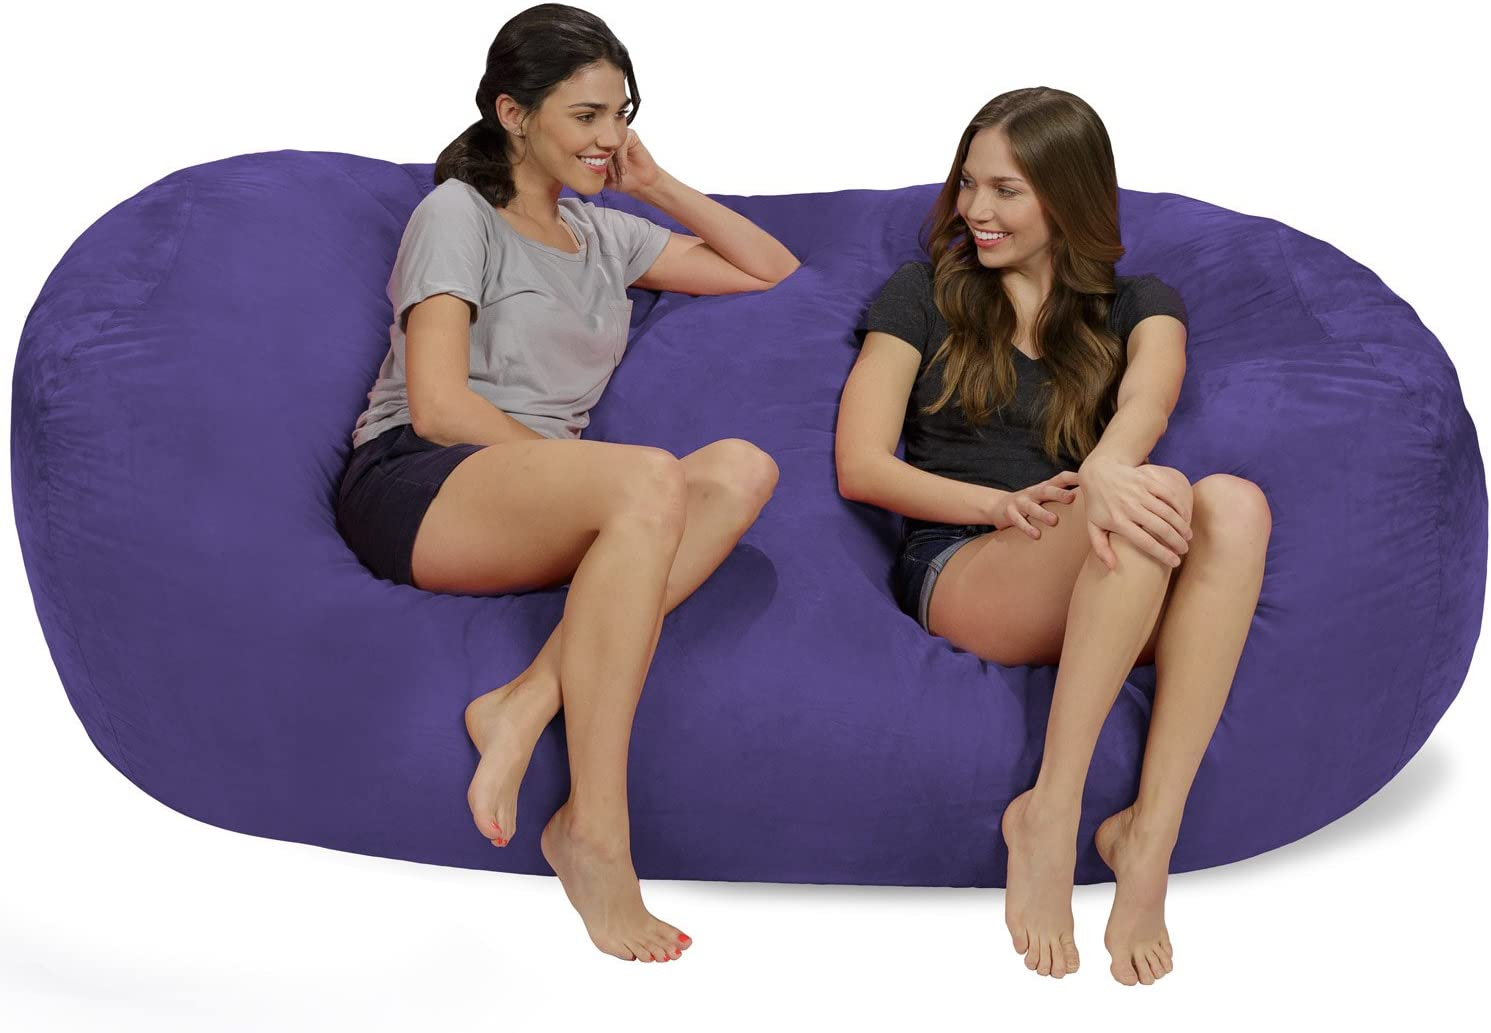 Chill Sack Bean Bag Chair: Huge San Clearance SALE! Limited time! Antonio Mall Memory a Furniture 7.5' Foam